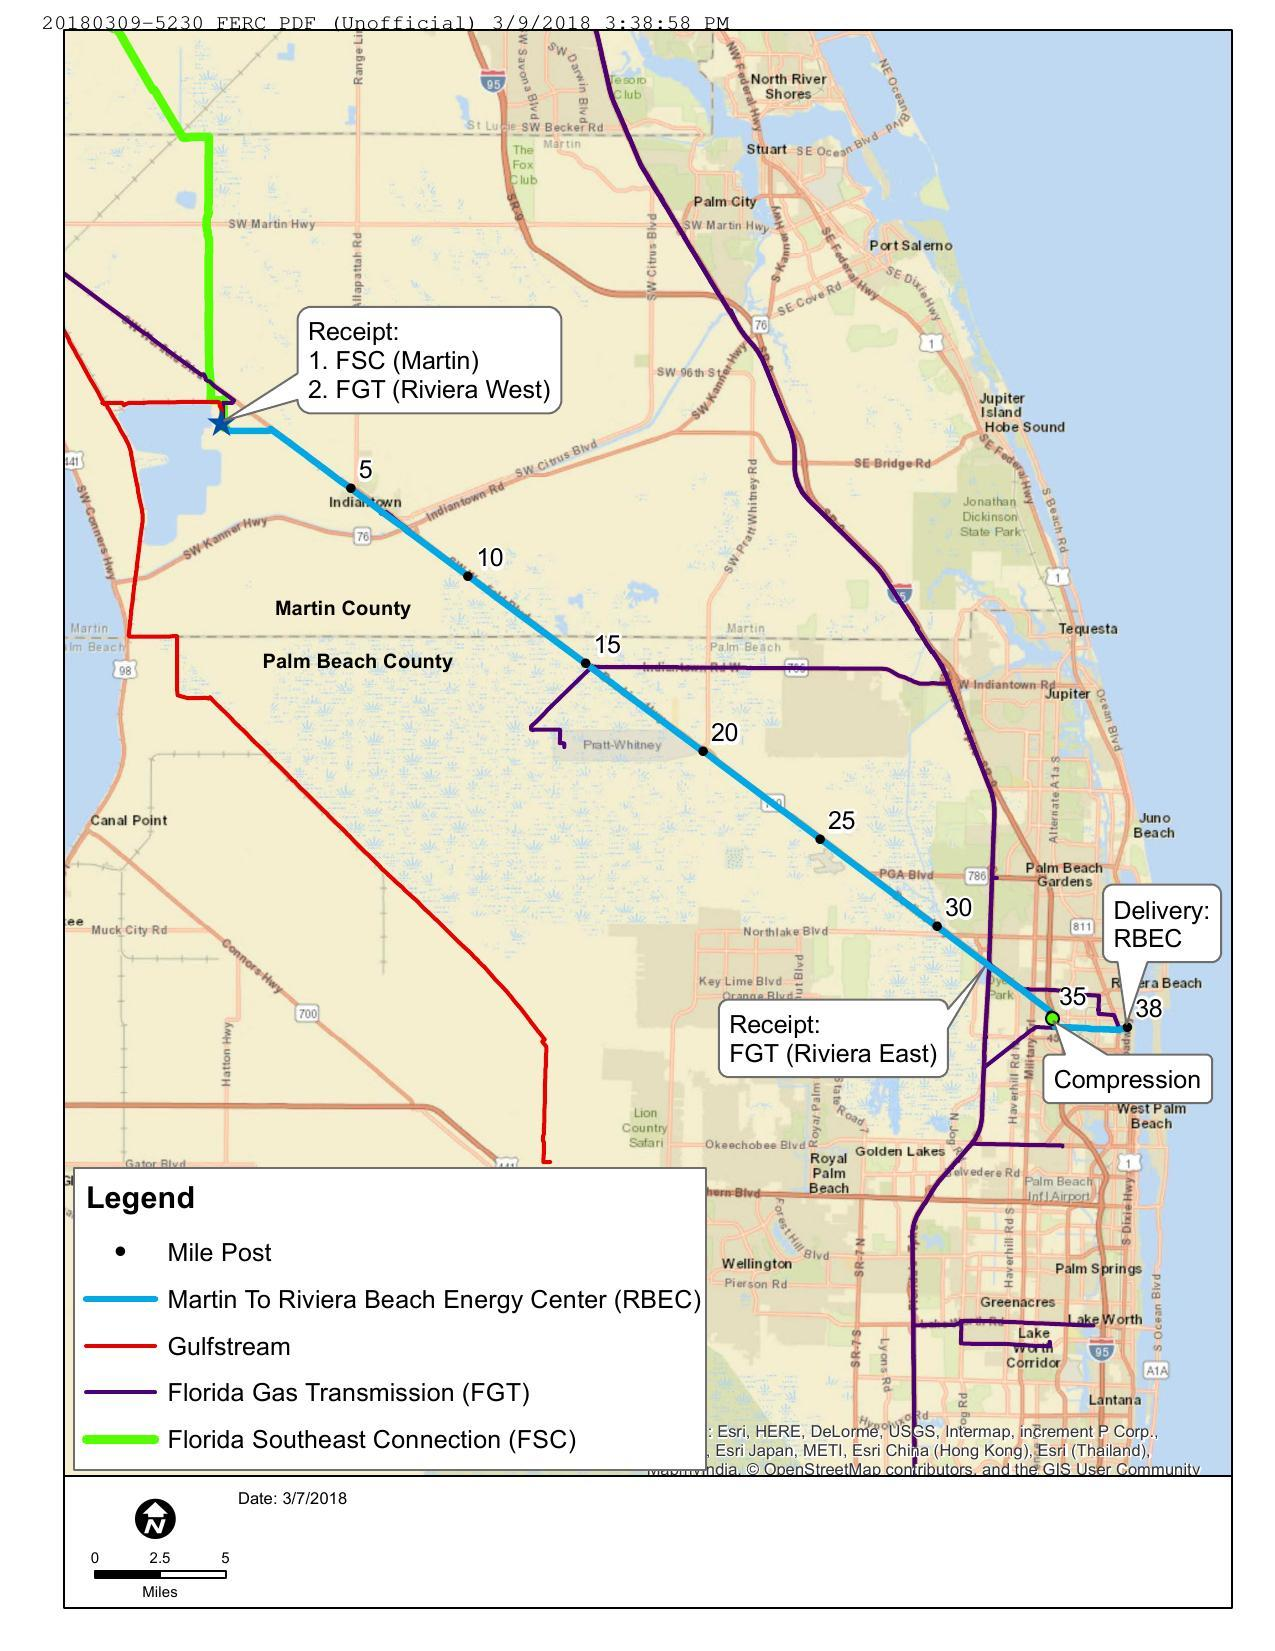 1275x1651 Indiantown to Riviera Beach, in FERC 20180309-5230, Docket CP18-108, MR-RV, in FPL files holiday weekend for Martin-Riviera Pipeline folded into FSC, by FPL via FERC, for WWALS.net, 31 October 2017